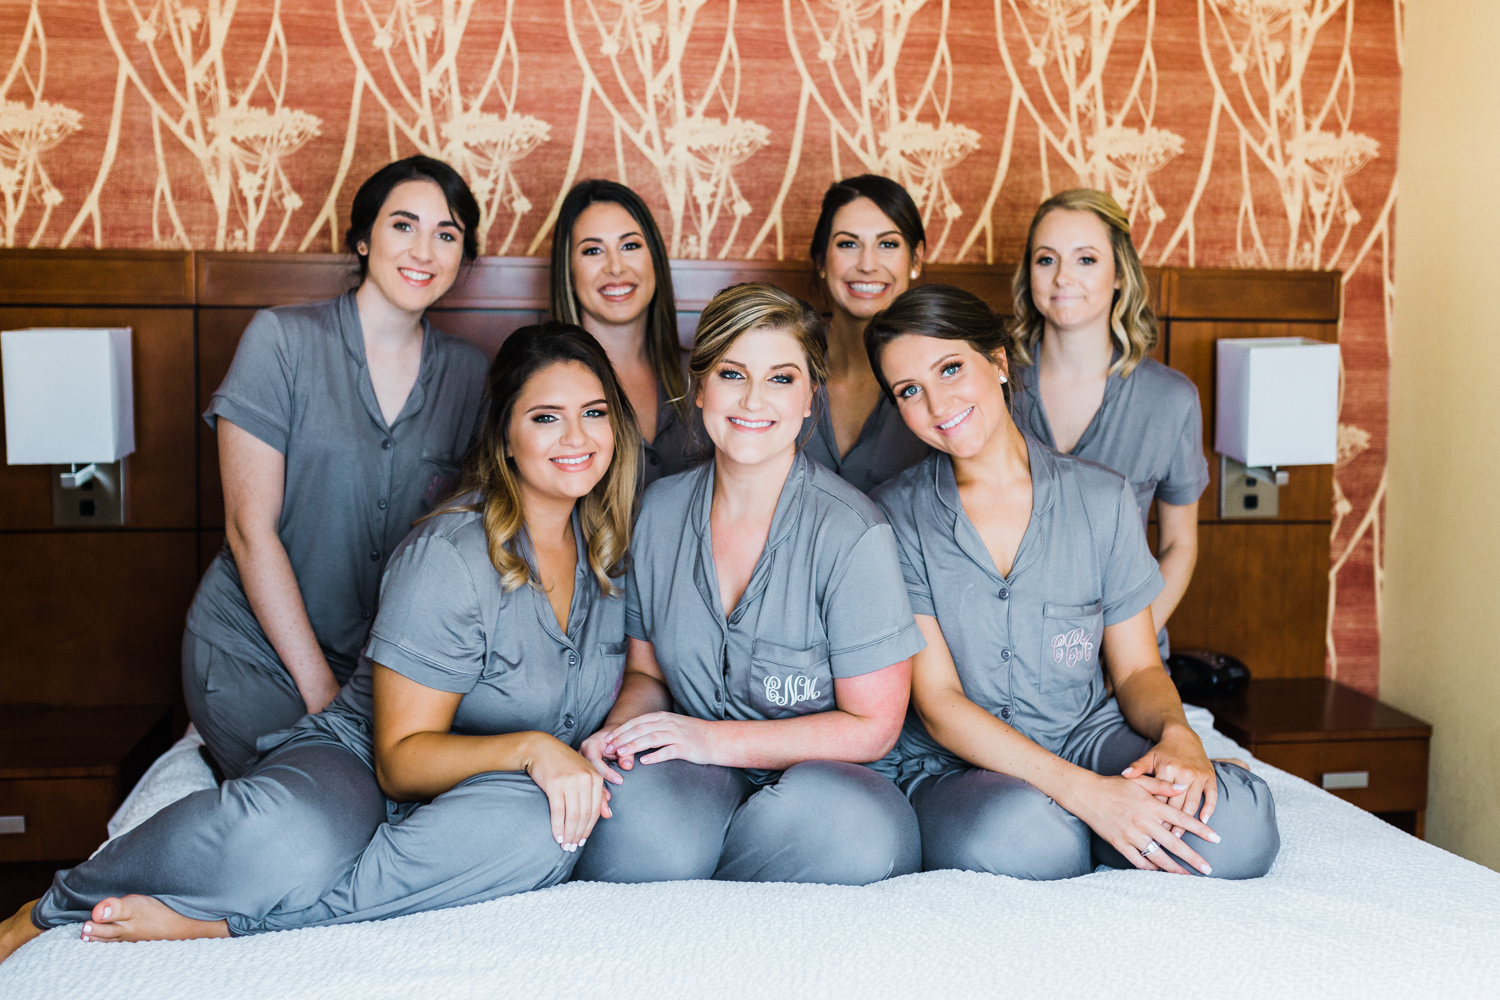 bride and her bridesmaids with matching monogrammed pajamas - Maryland wedding venues - Frederick MD wedding photographer and videographer